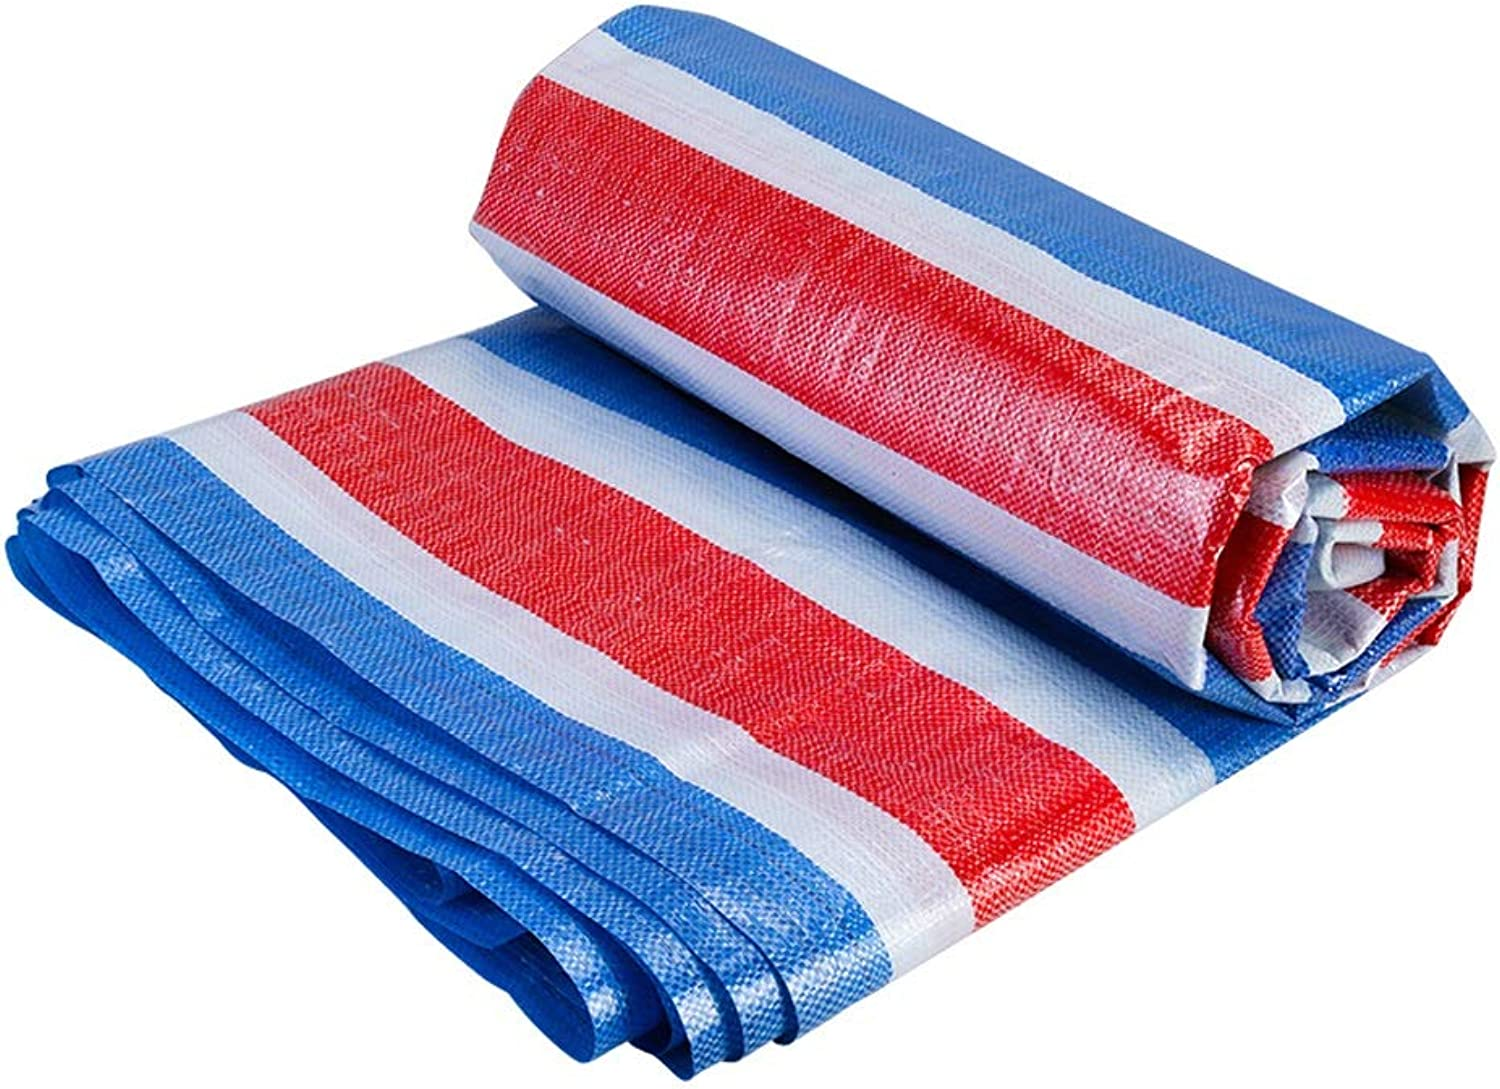 Jia He Tarpaulin Outdoor Tarpaulin Awning red blueee and White color Strip Cloth Shade Cloth Plastic Cloth, 18 Sizes @@ (Size   6mX10m)